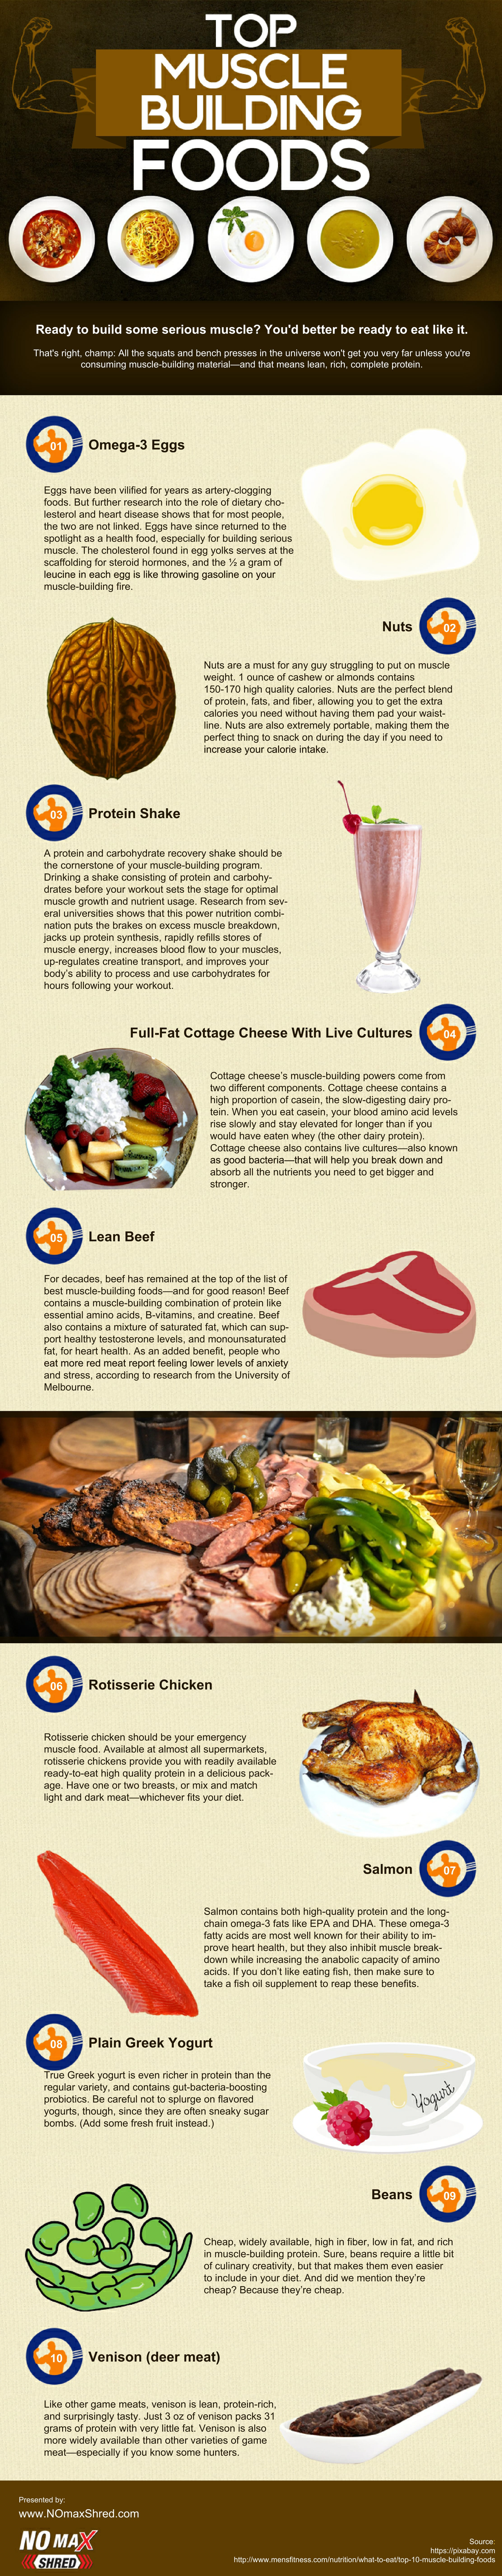 10 Foods To Include In Your Diet For Building Muscle - Infographic